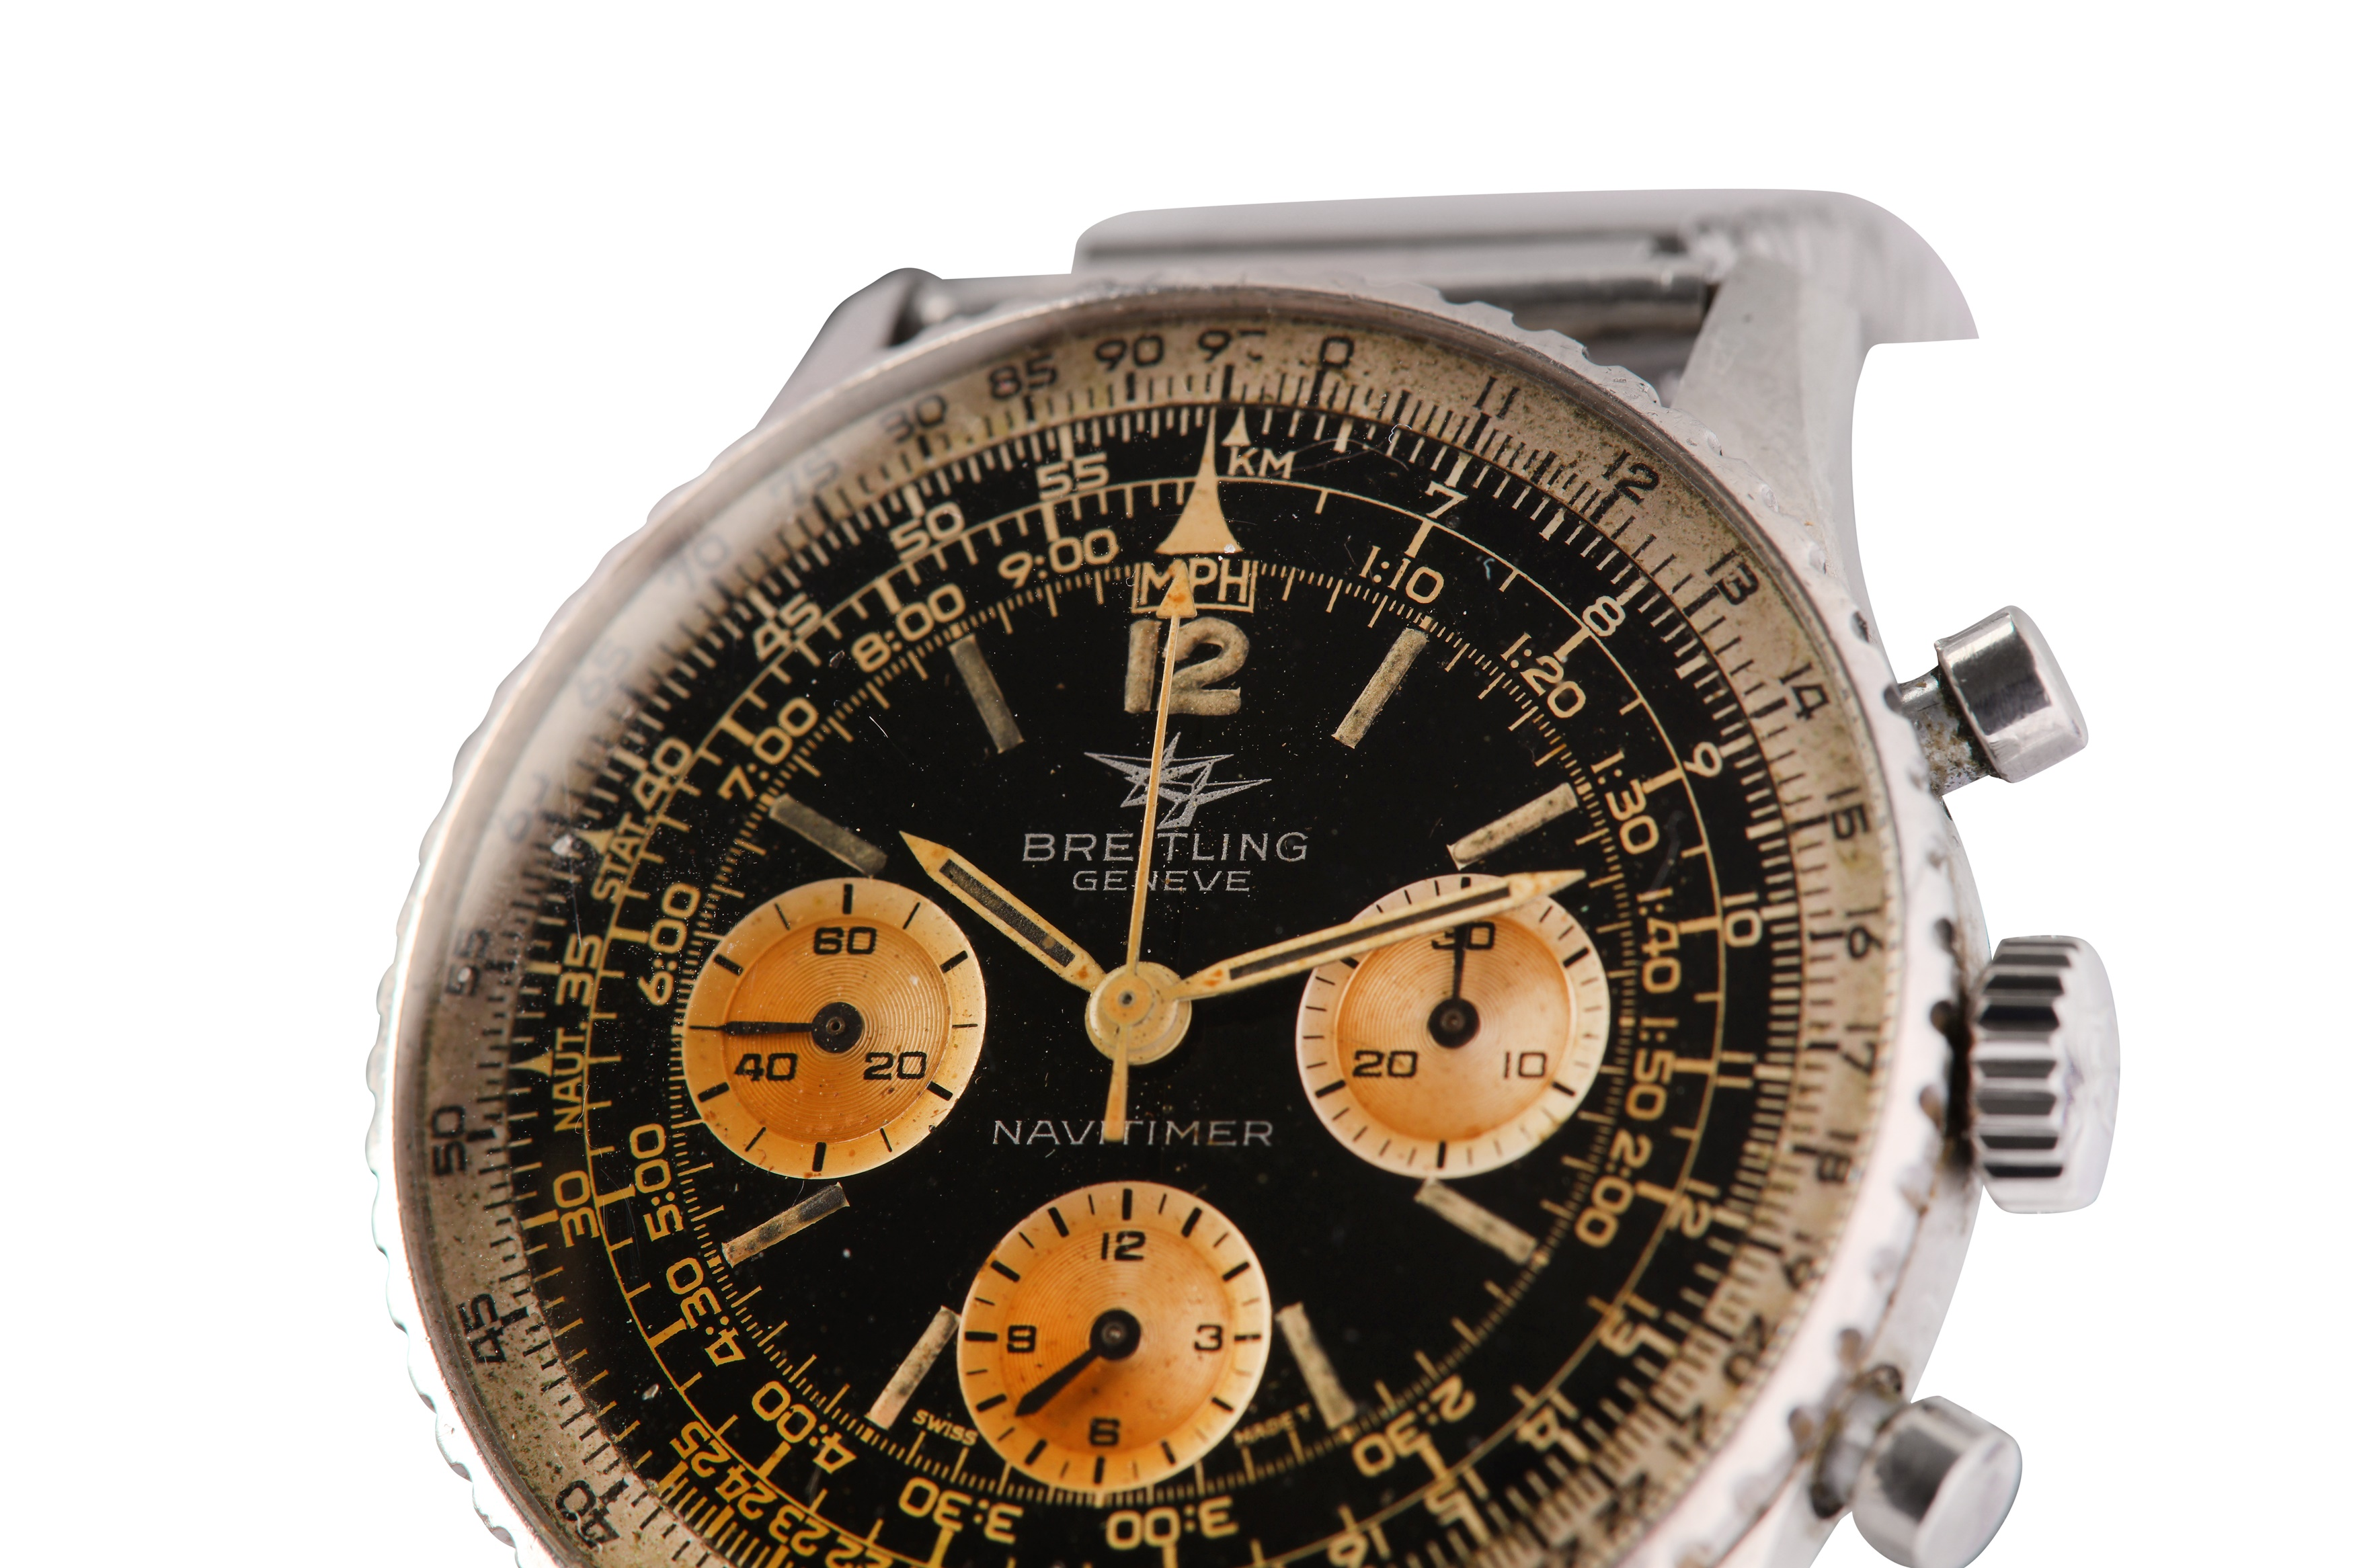 BREITLING. - Image 3 of 8